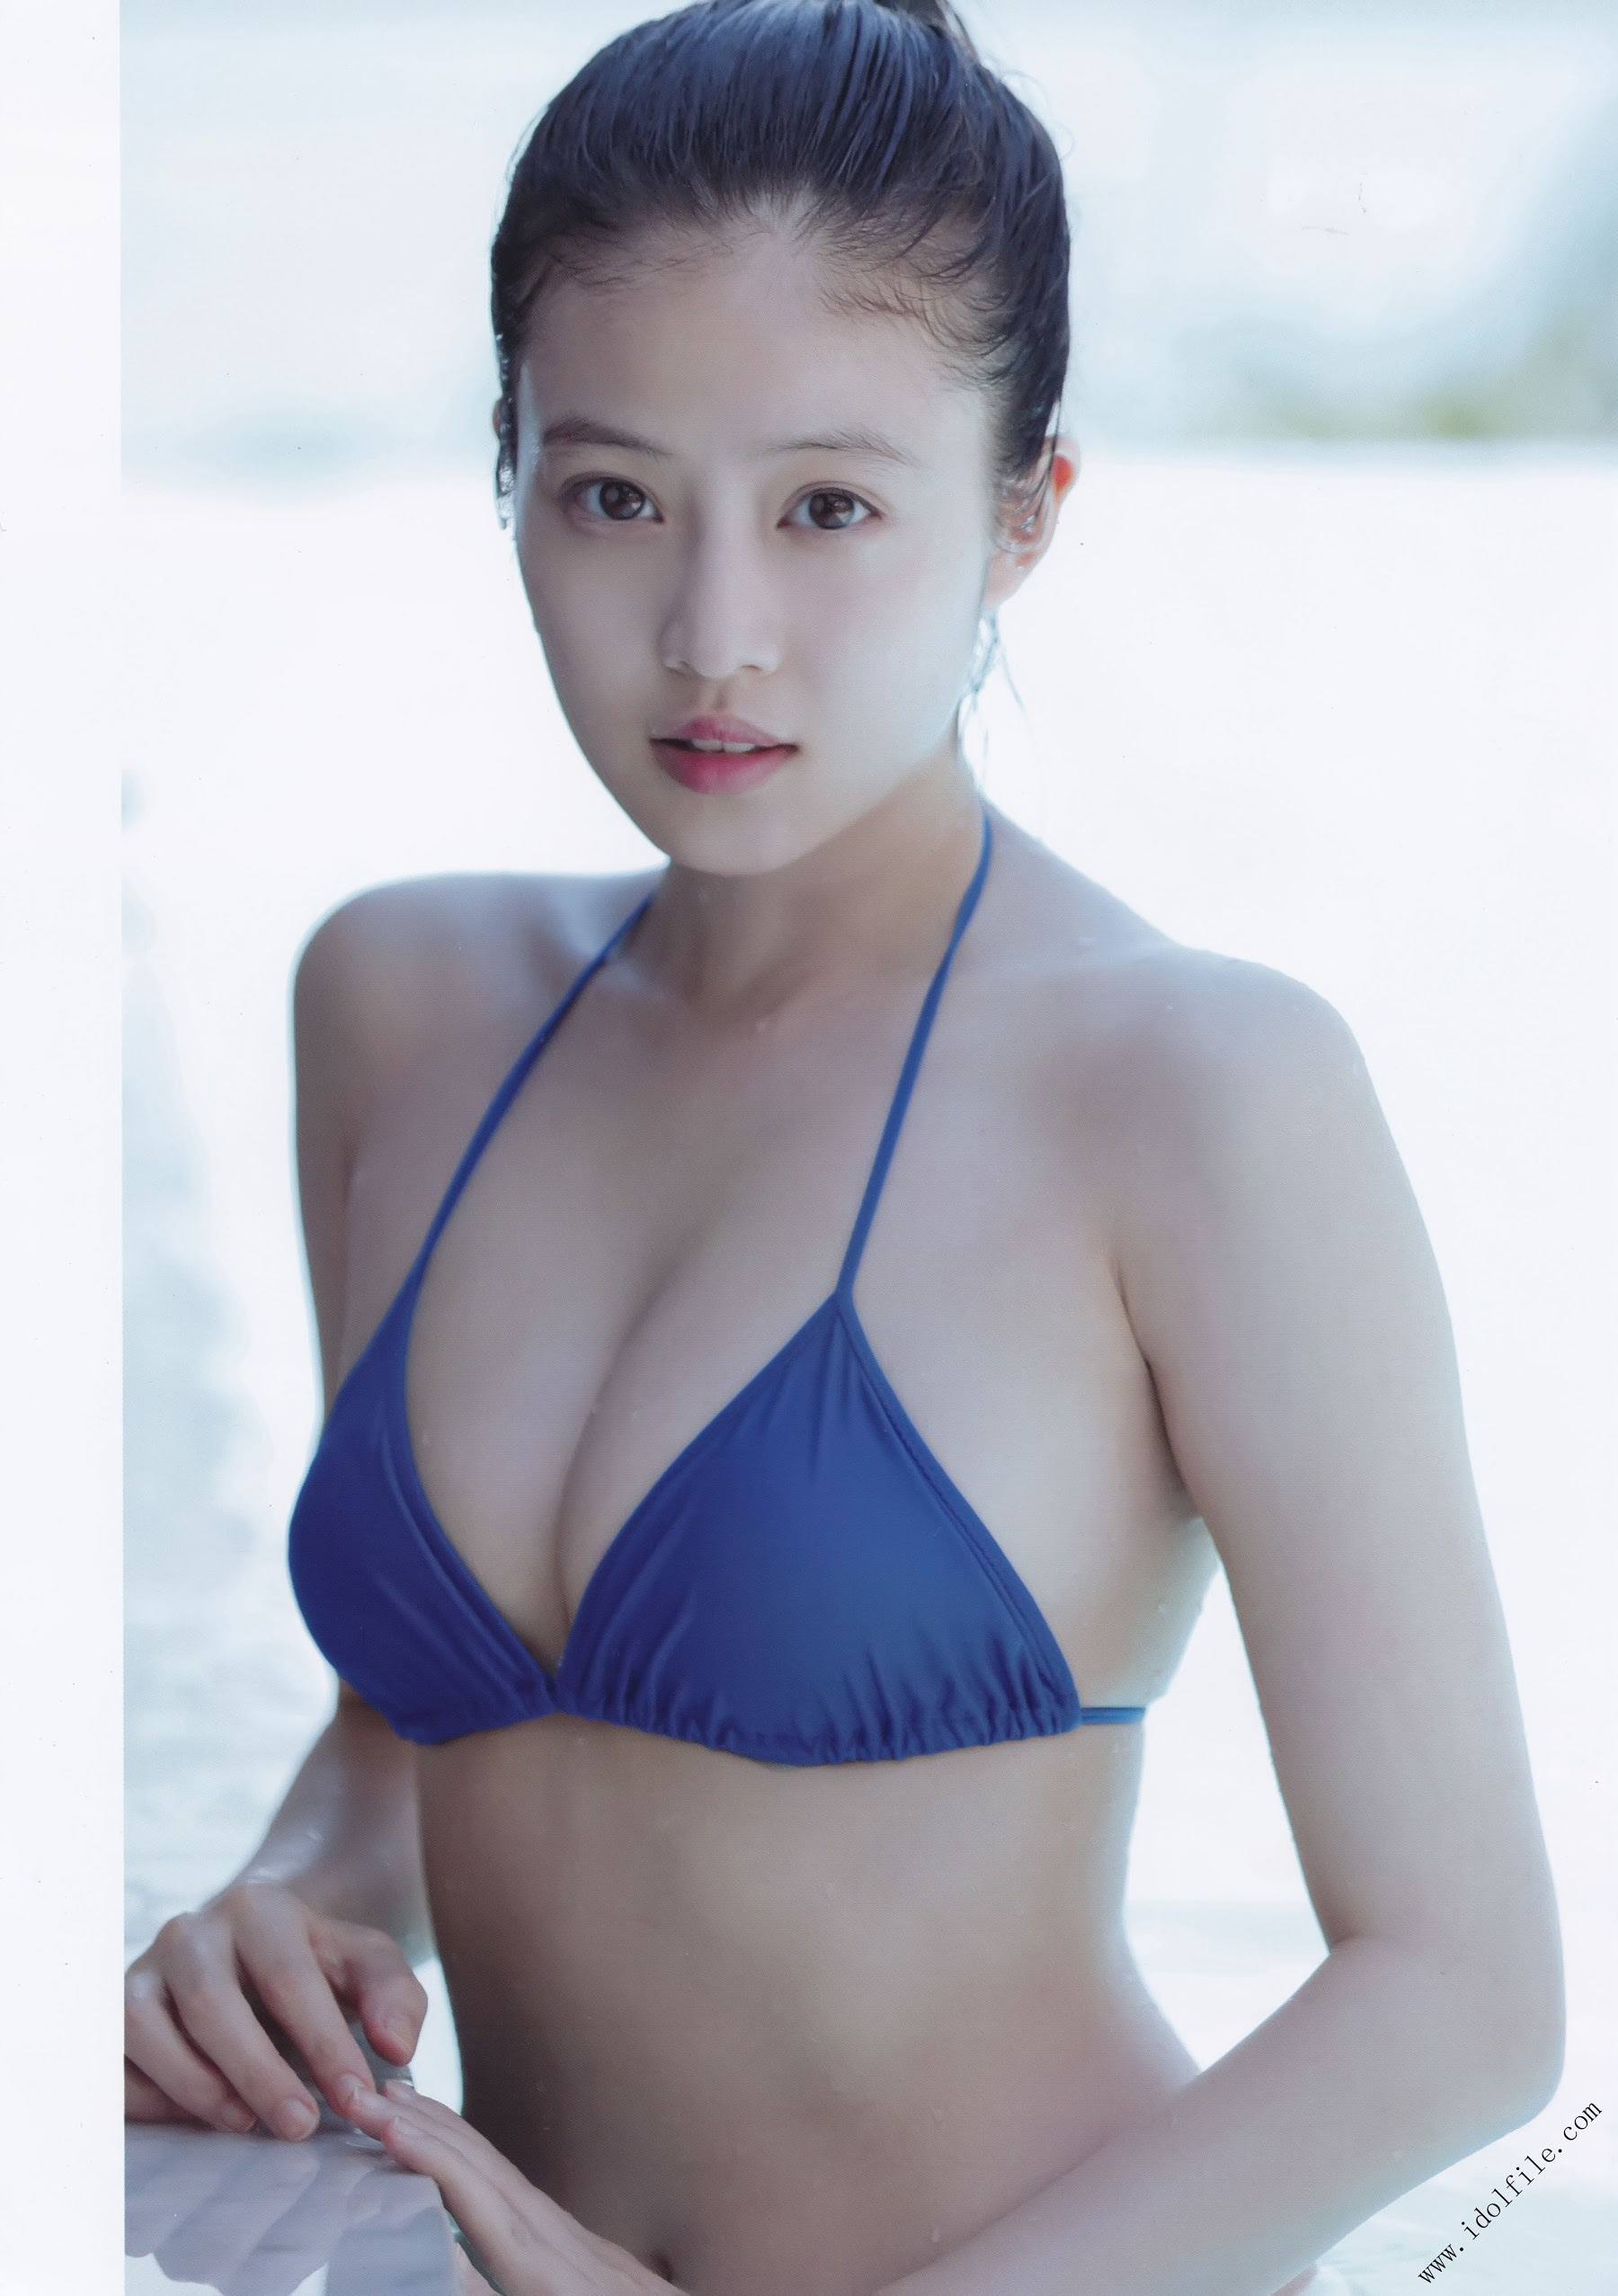 Pretty and beautiful, 22 years old and innocent Moving to the next stage as an actress Mio Imada144